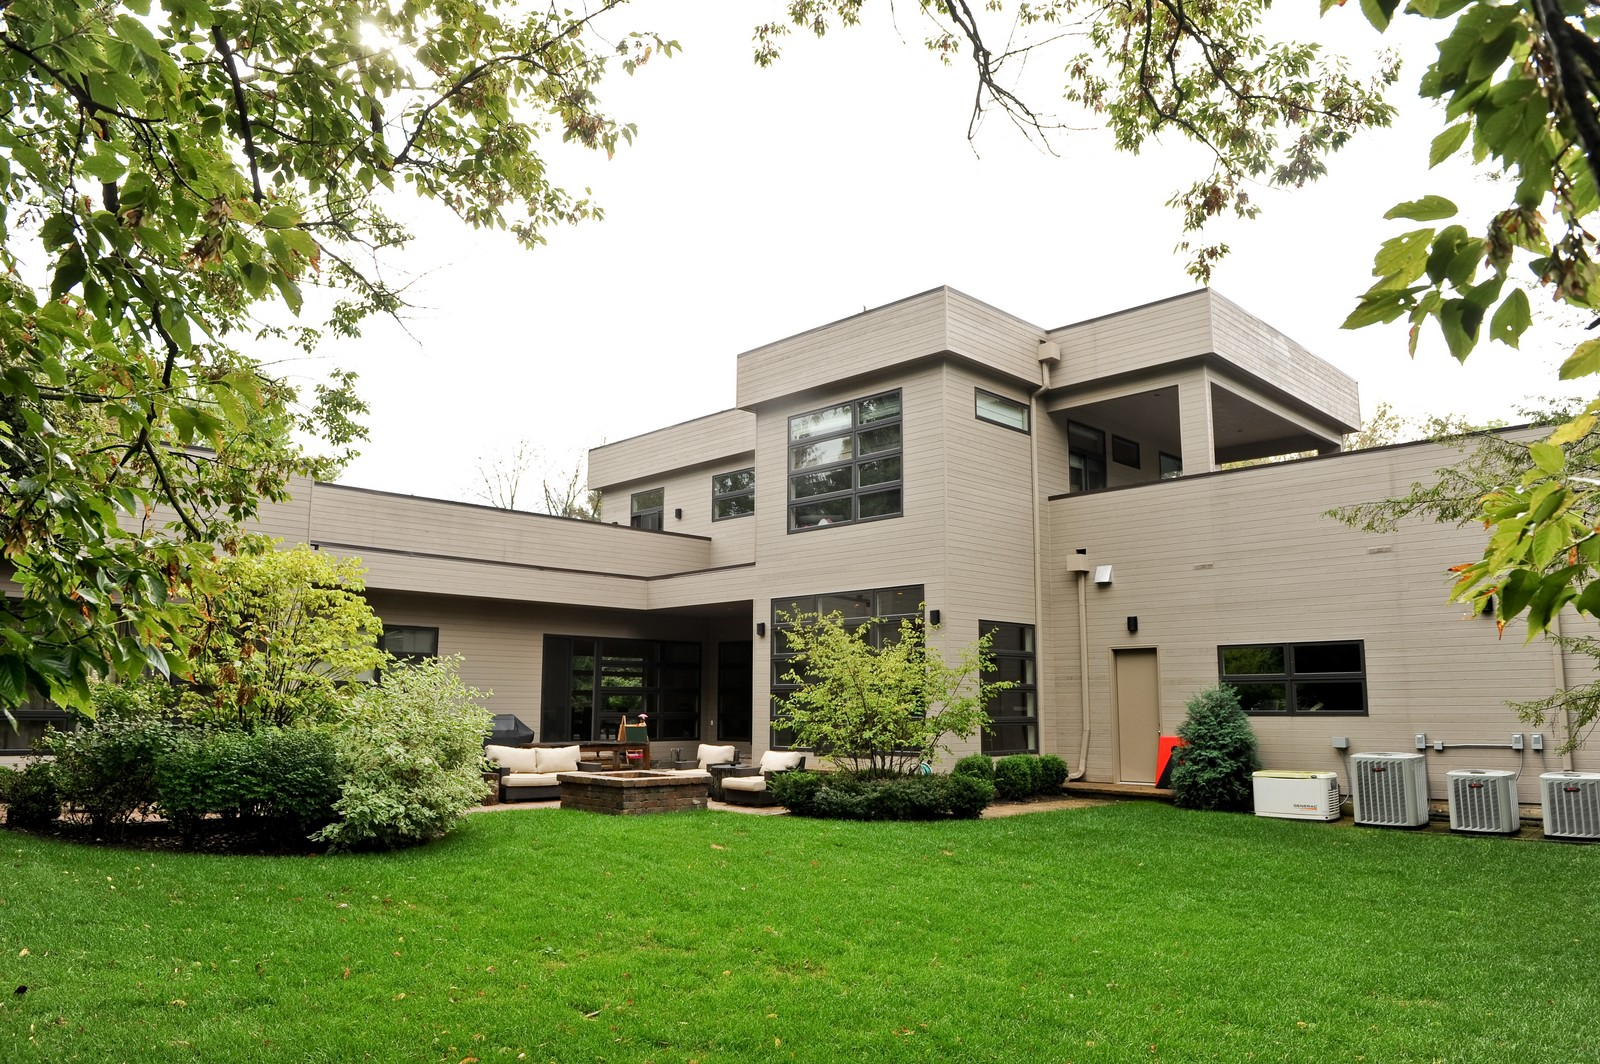 Real Estate Photography - 48 Valley Rd, Highland Park, IL, 60035 - Rear View